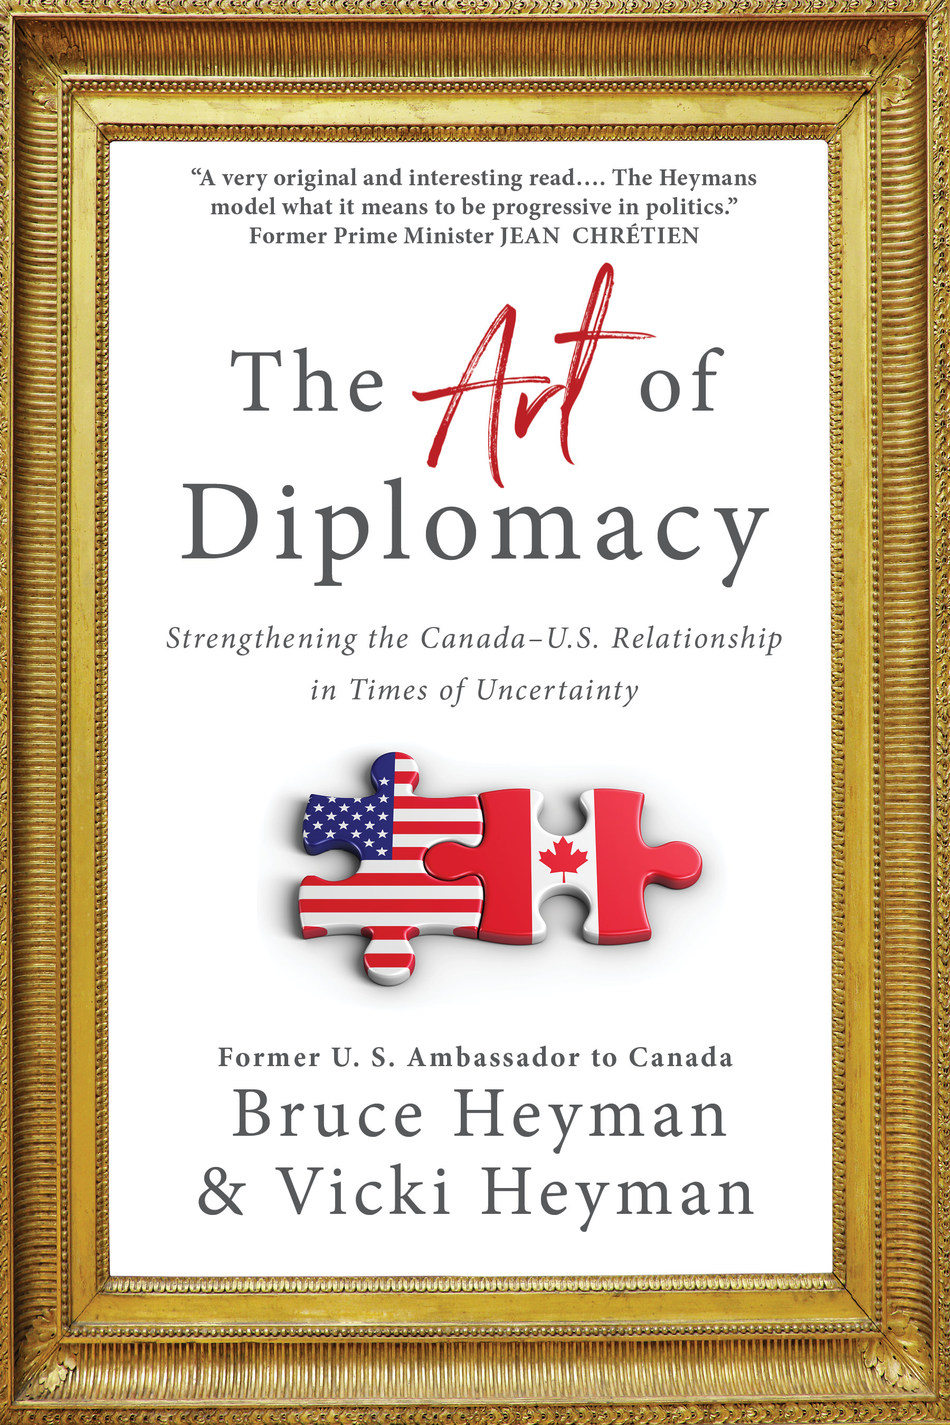 The Art of Diplomacy by Bruce Heyman & Vicki Heyman (CNW Group/Simon and Schuster Canada)